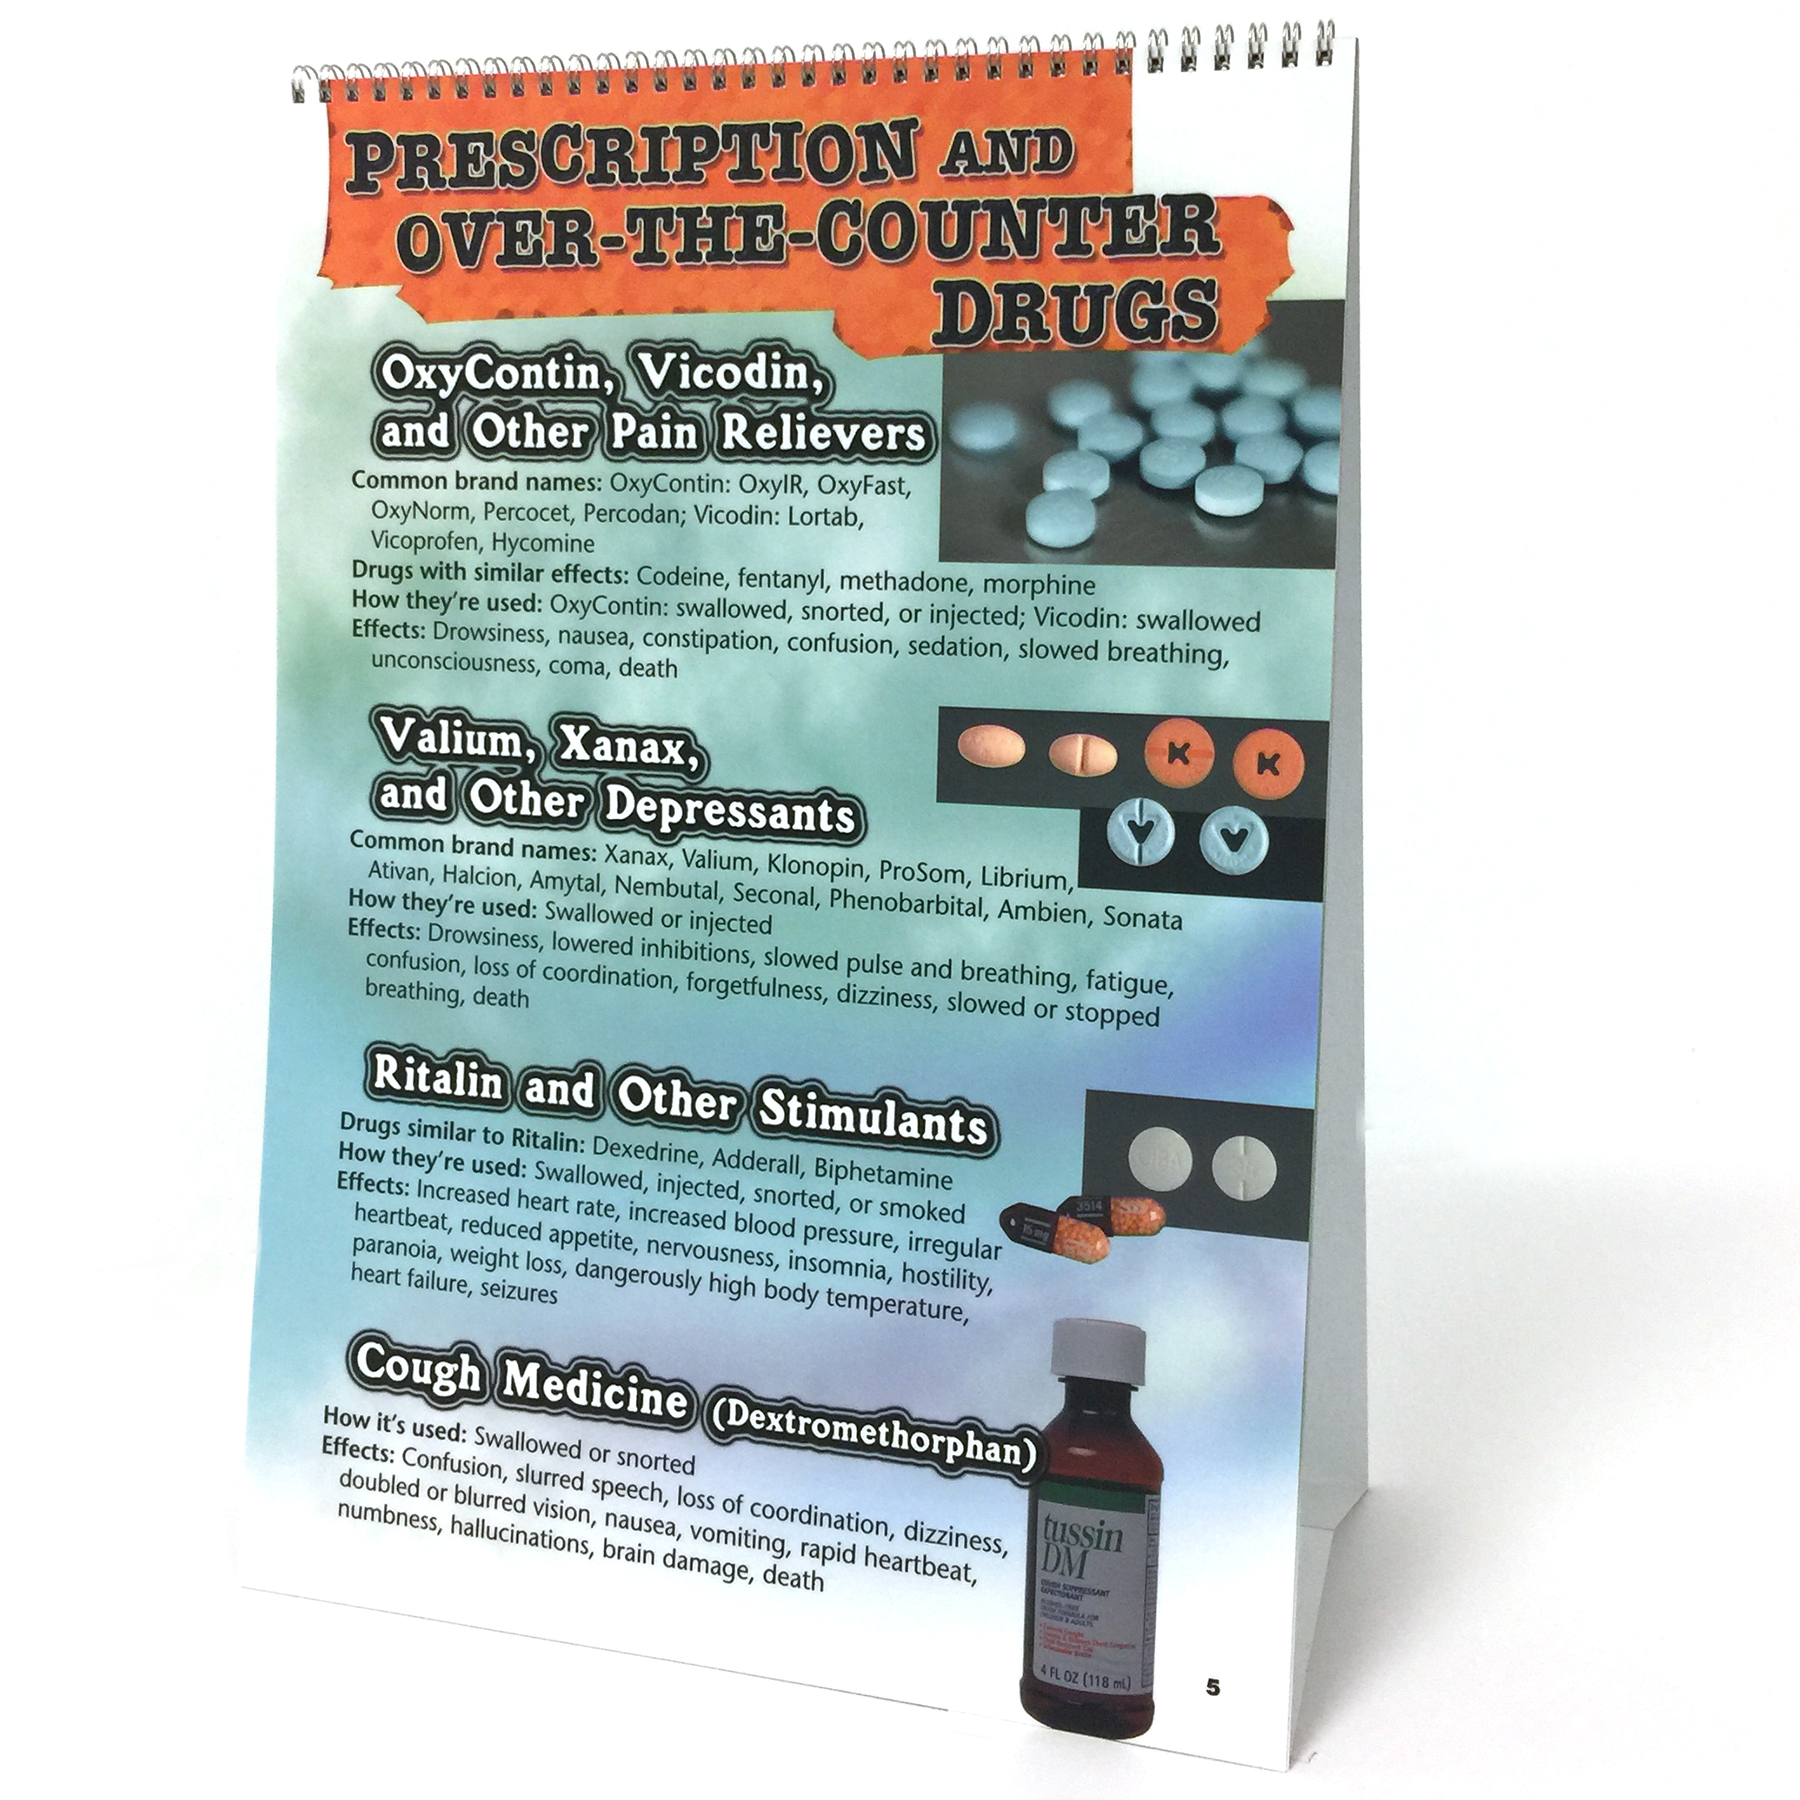 Substance abuse identification guide panel spiral bound flip chart prescription and otc also drug  id health edco rh healthedco